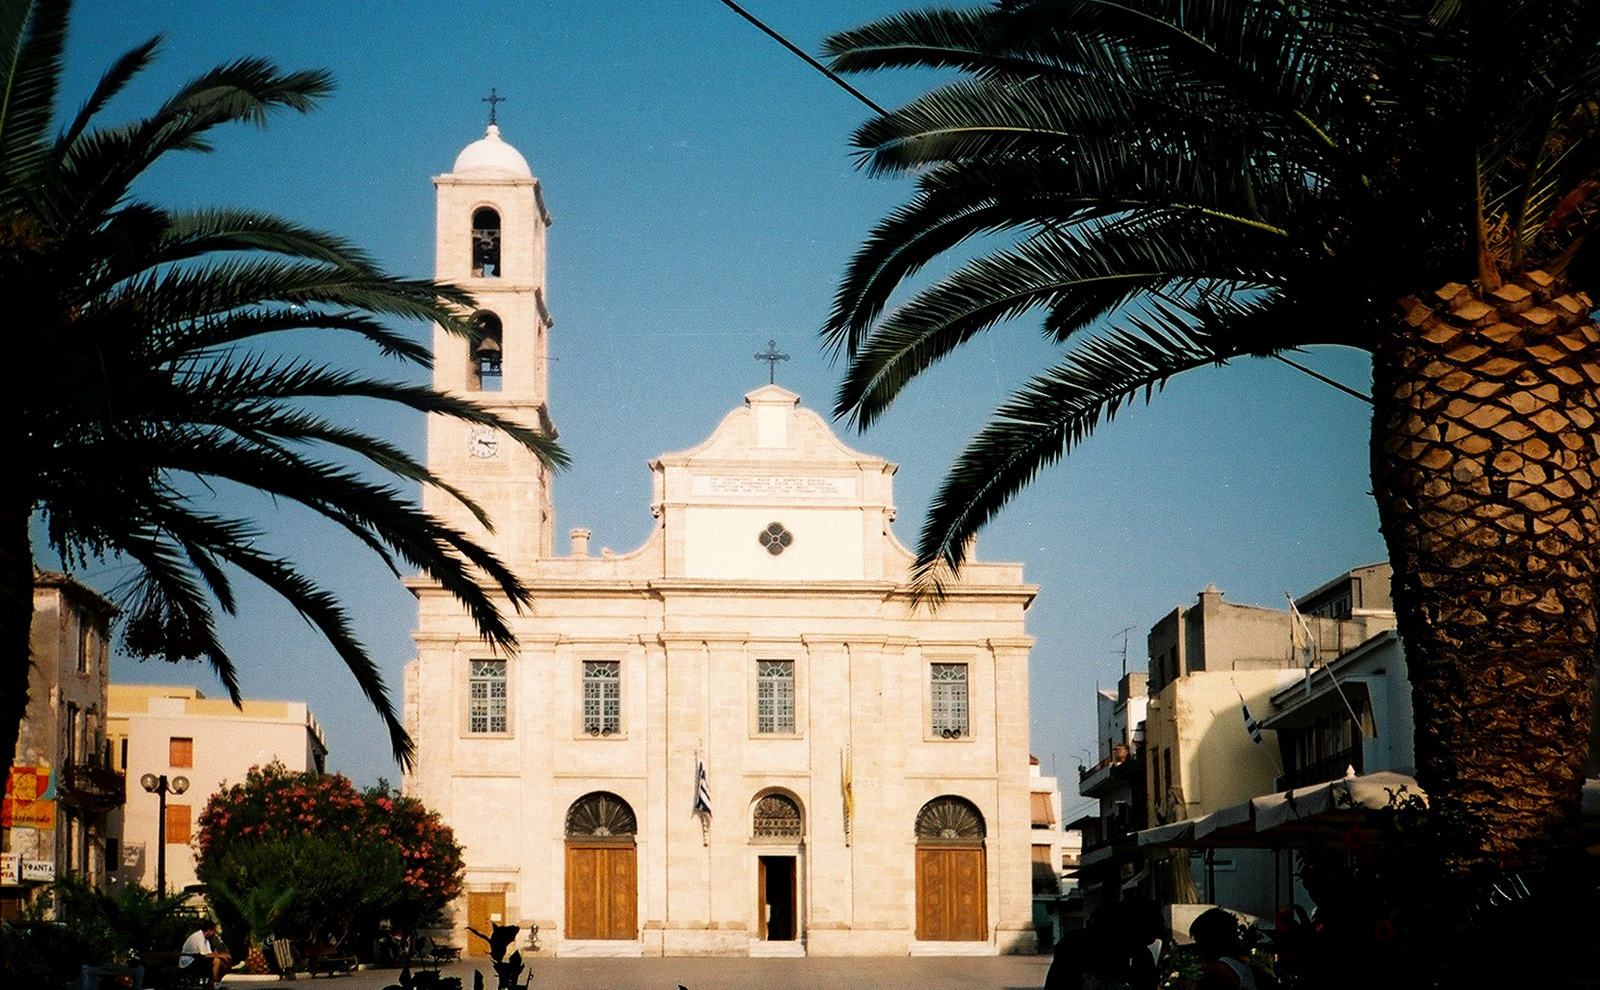 The Orthodox church in Chania, Crete, 1994